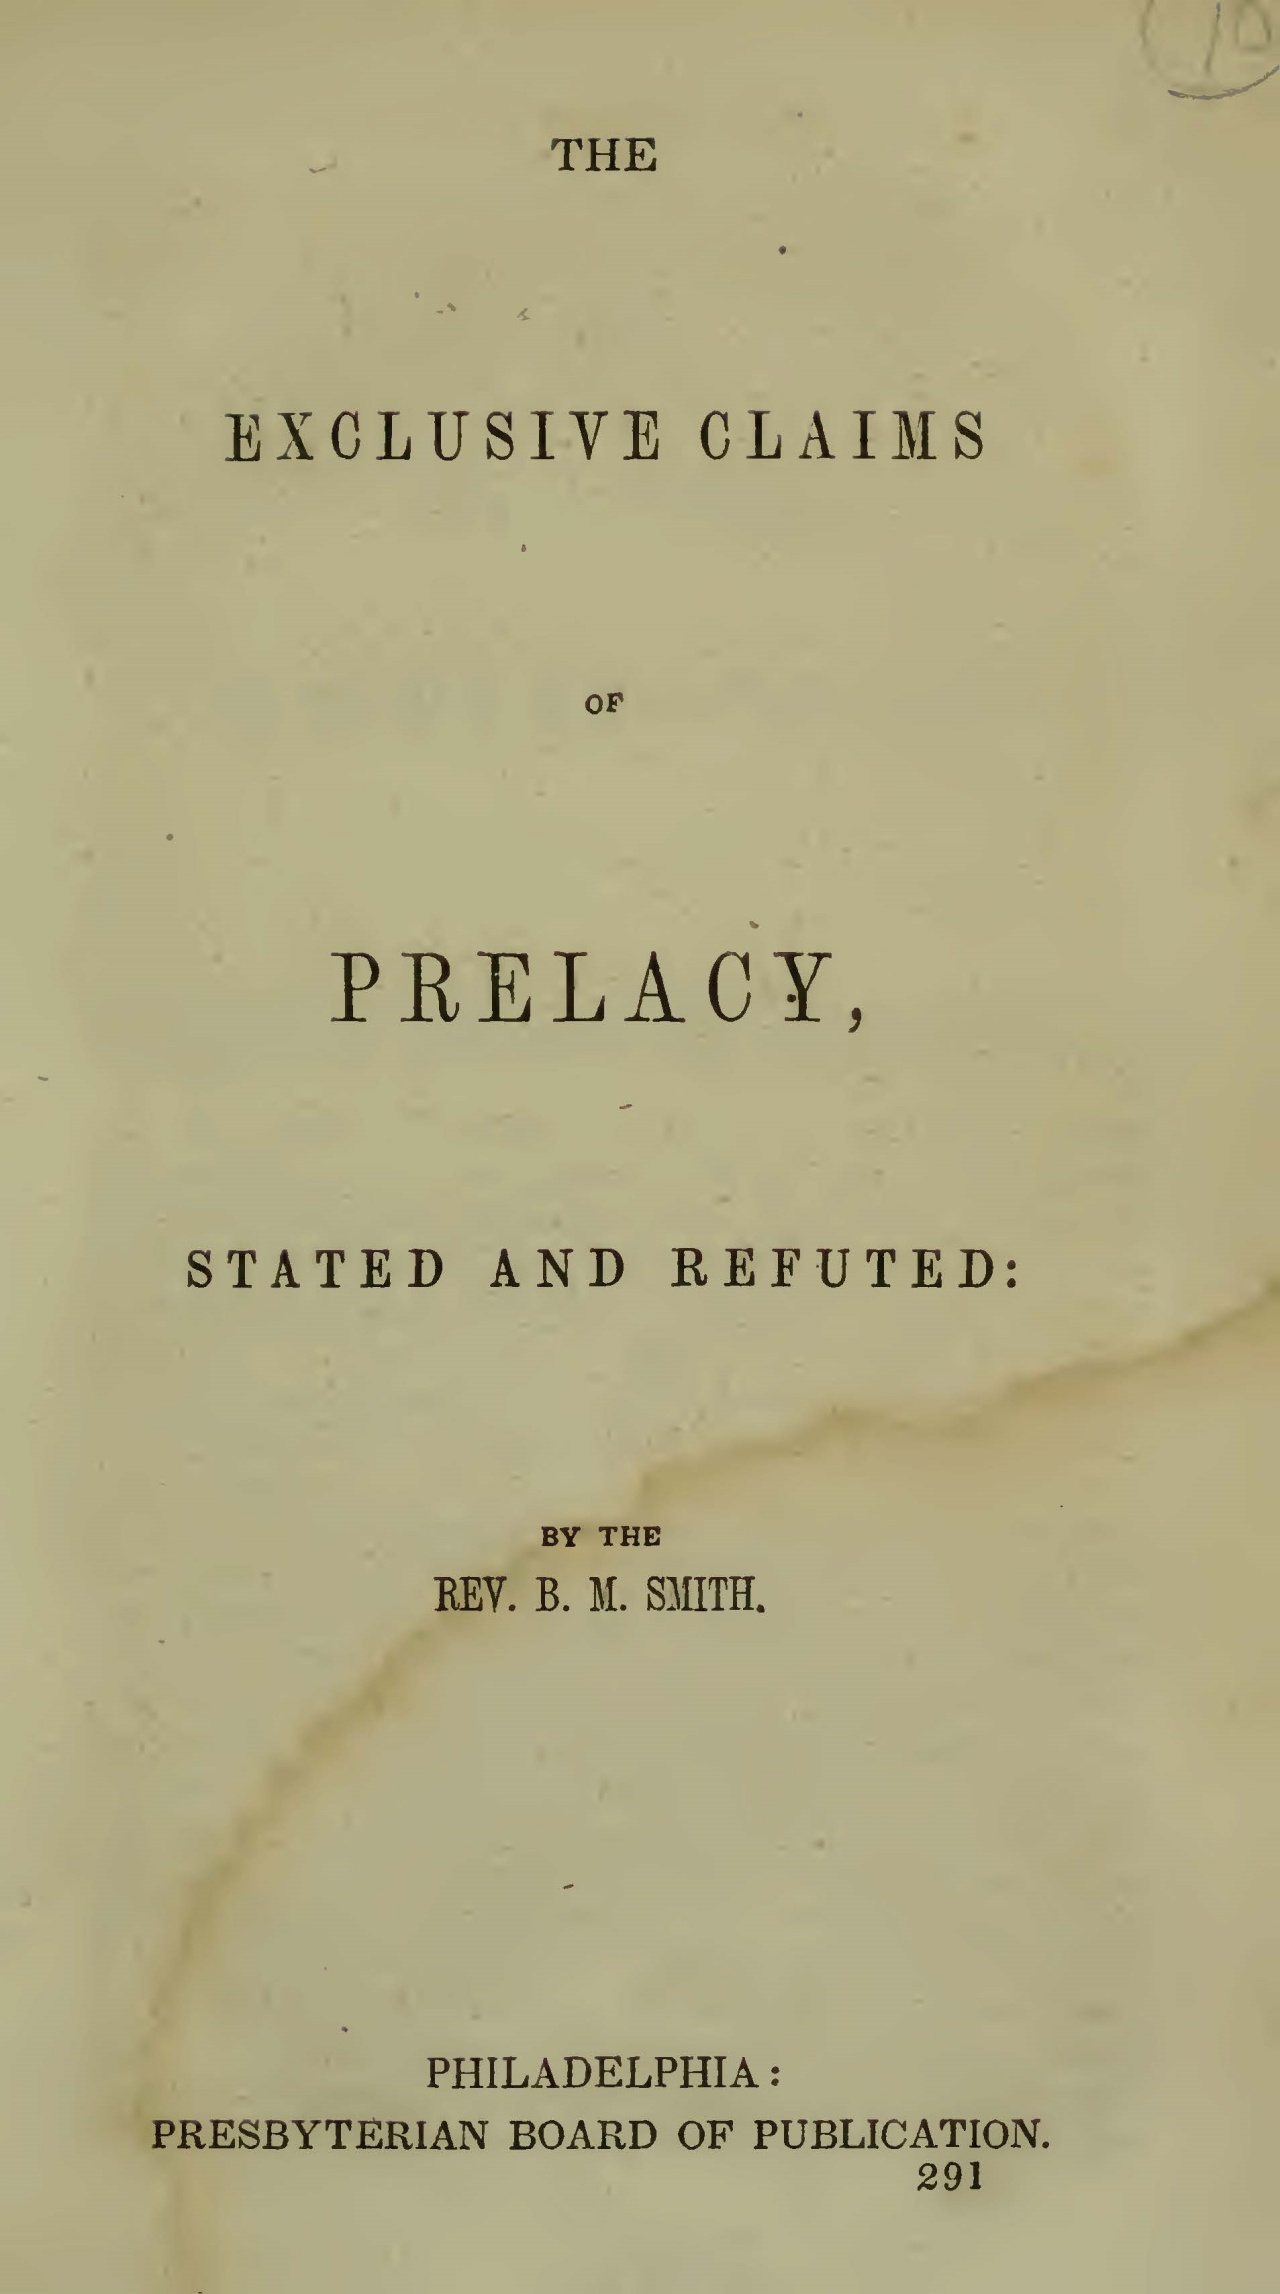 Smith, Benjamin Mosby, The Exclusive Claims of Prelacy Title Page.jpg